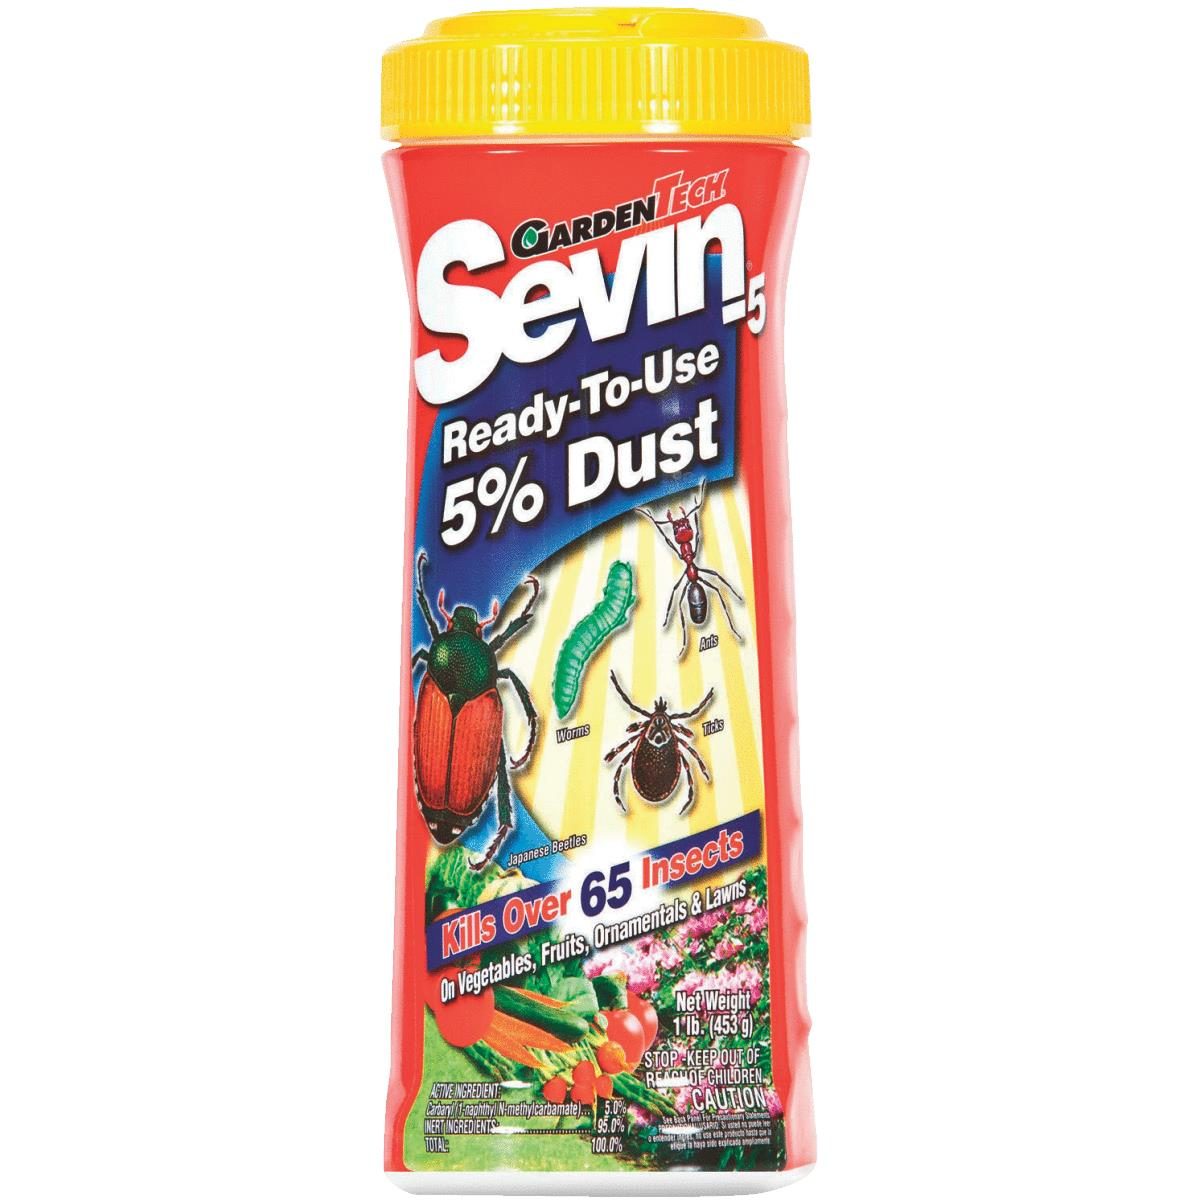 How to apply sevin dust